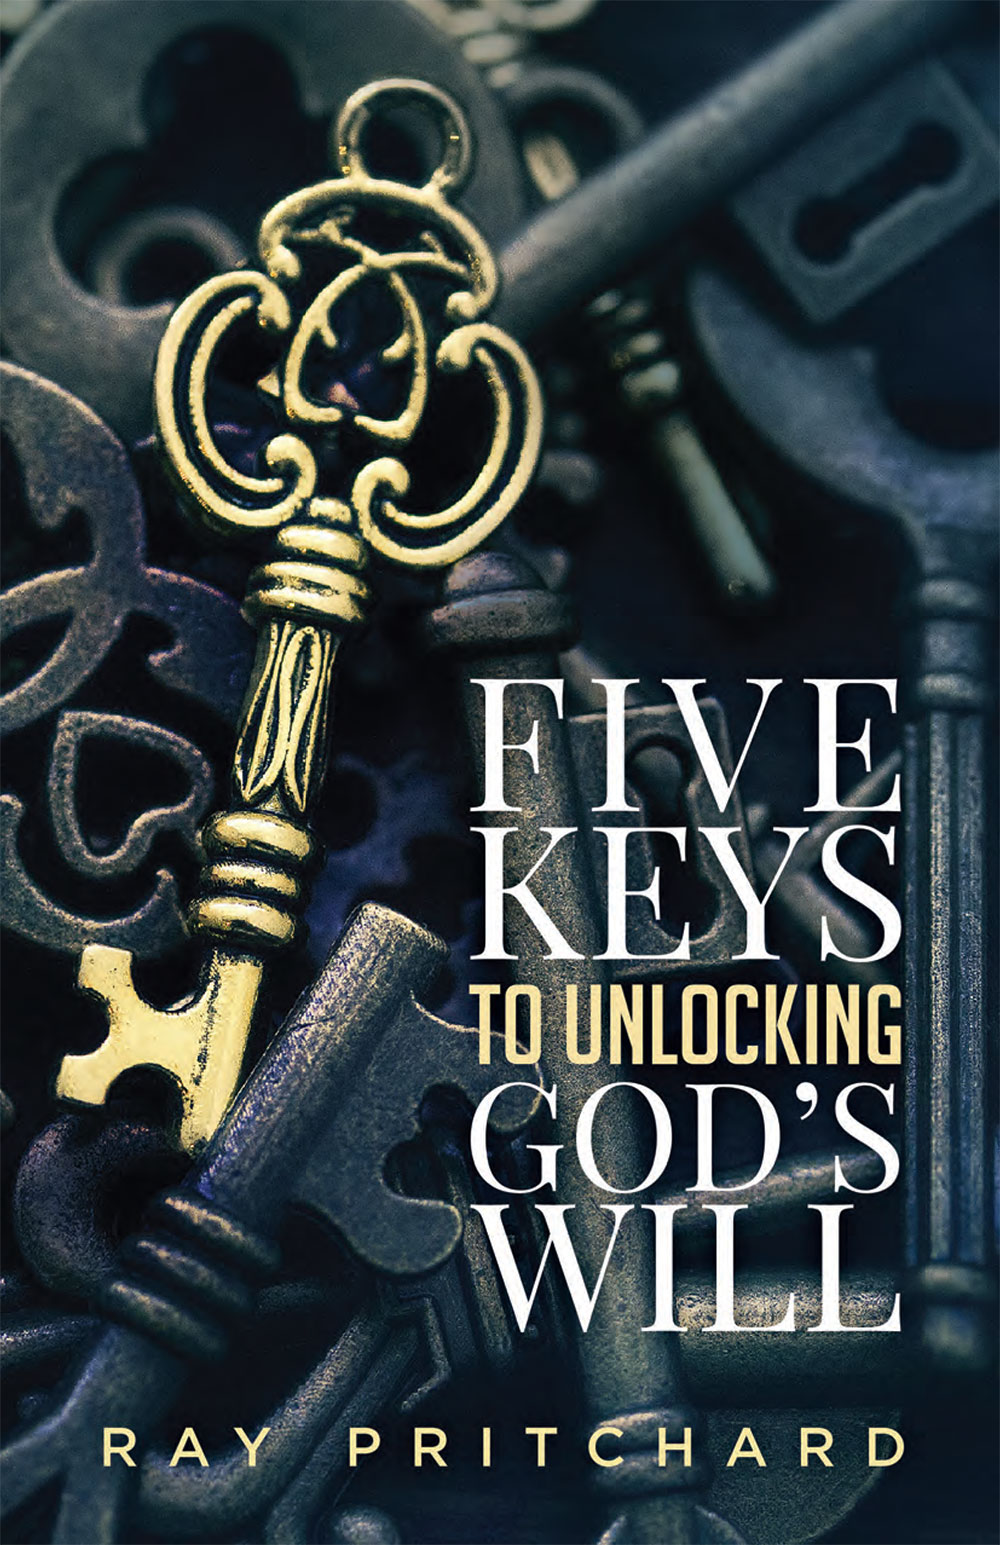 Five Keys to Unlocking God's Will